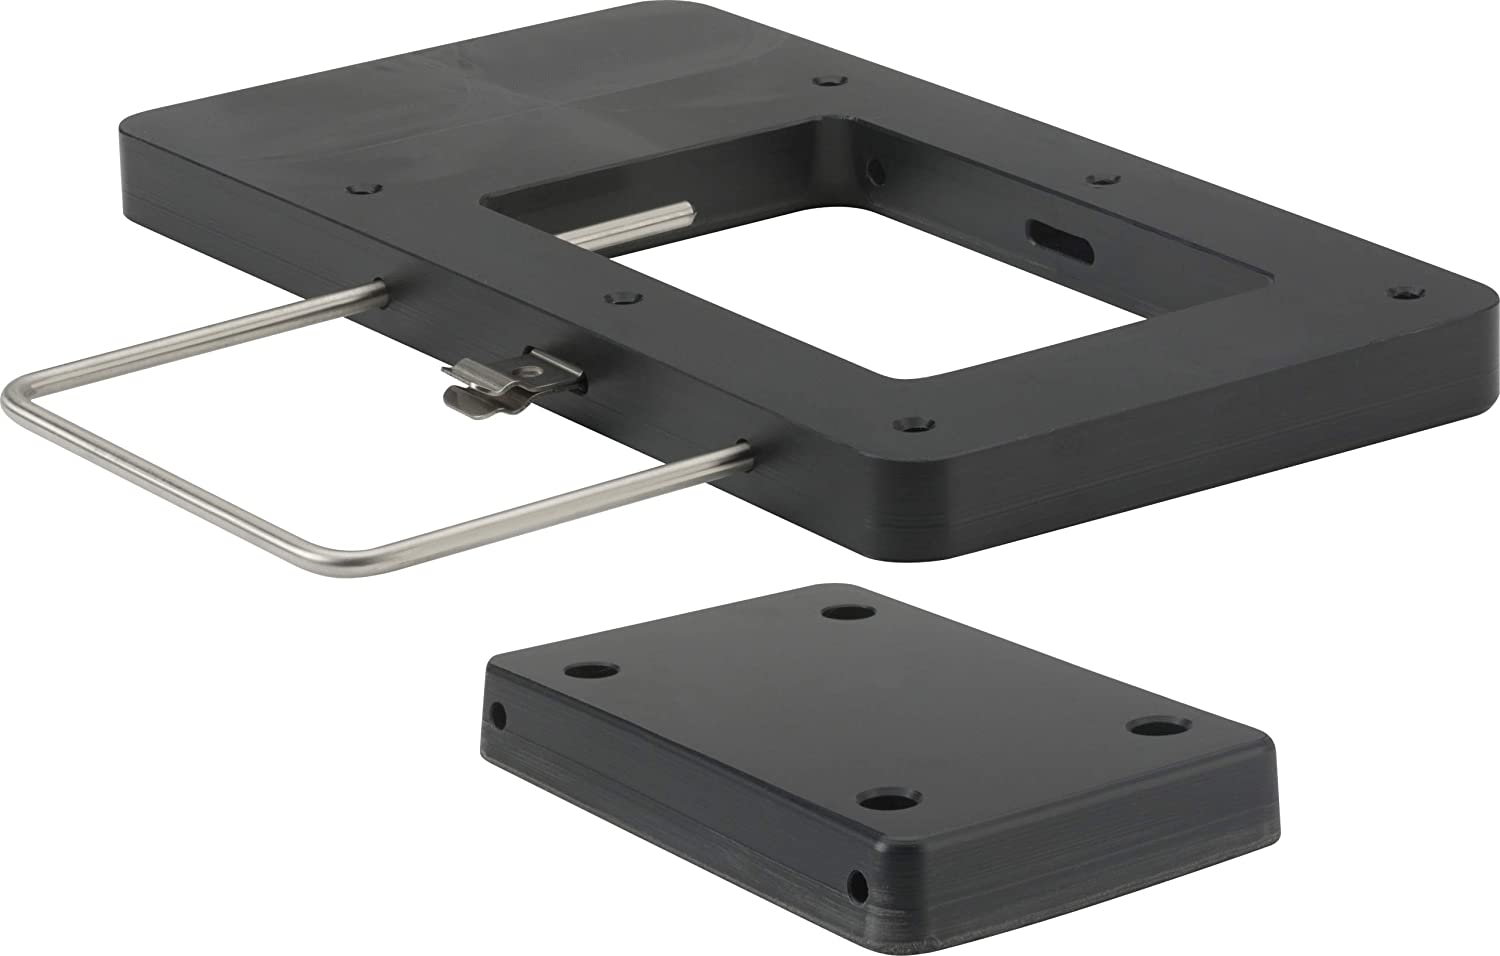 attwood 8M0120717 Xi Series Quick-Release Bracket Kit for Electric Trolling Motors - Black